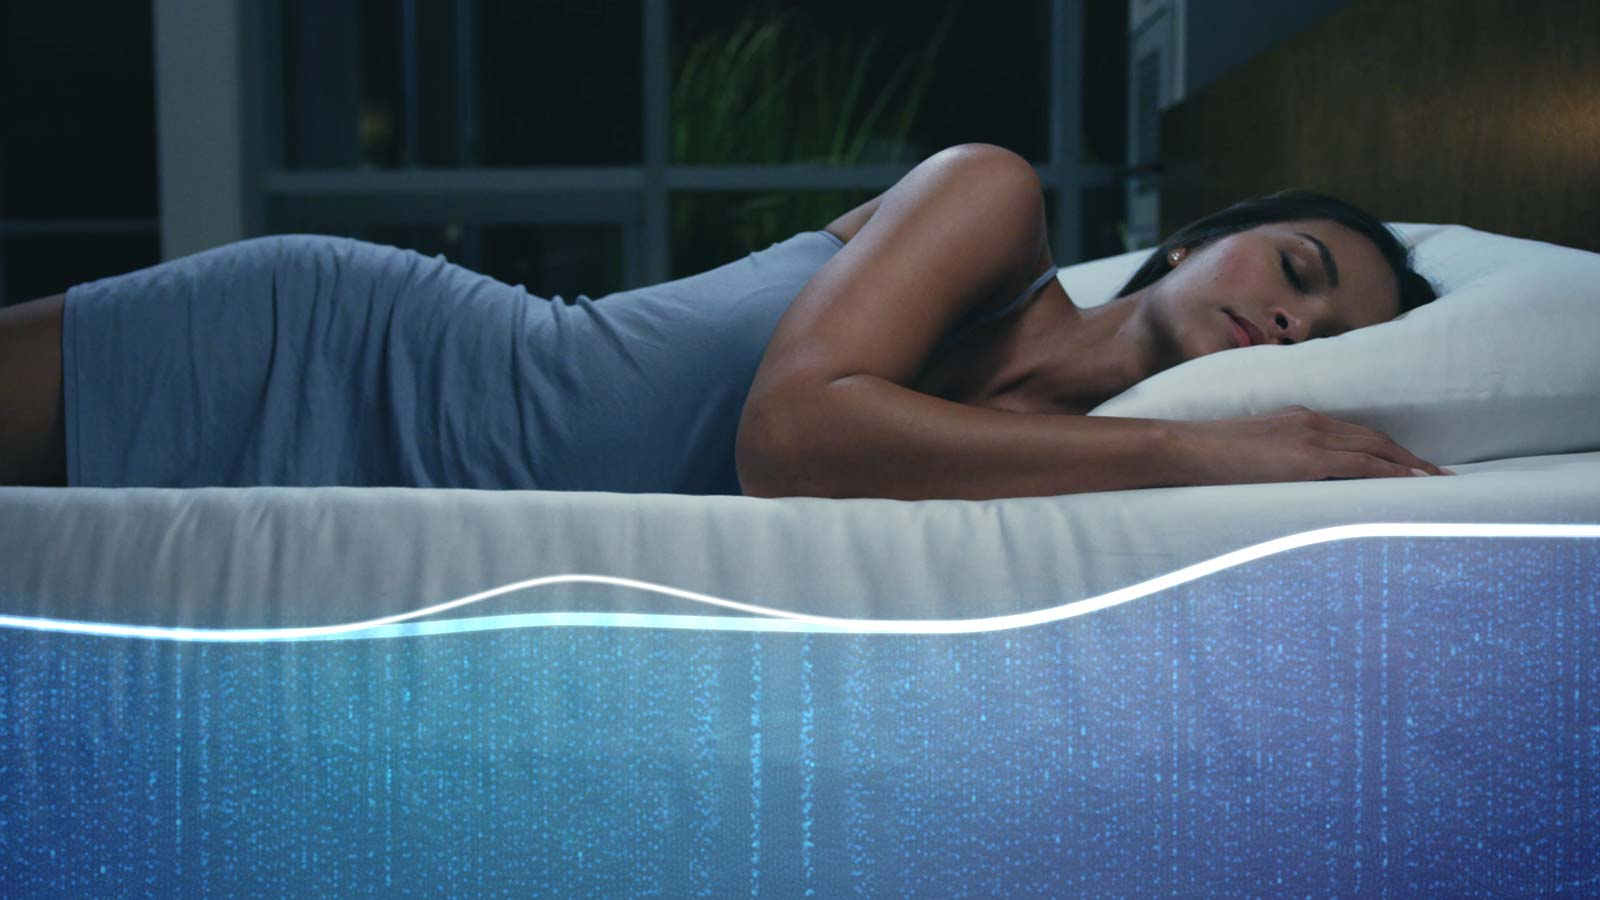 Woman lying on bed used for sleep number trade show visuals